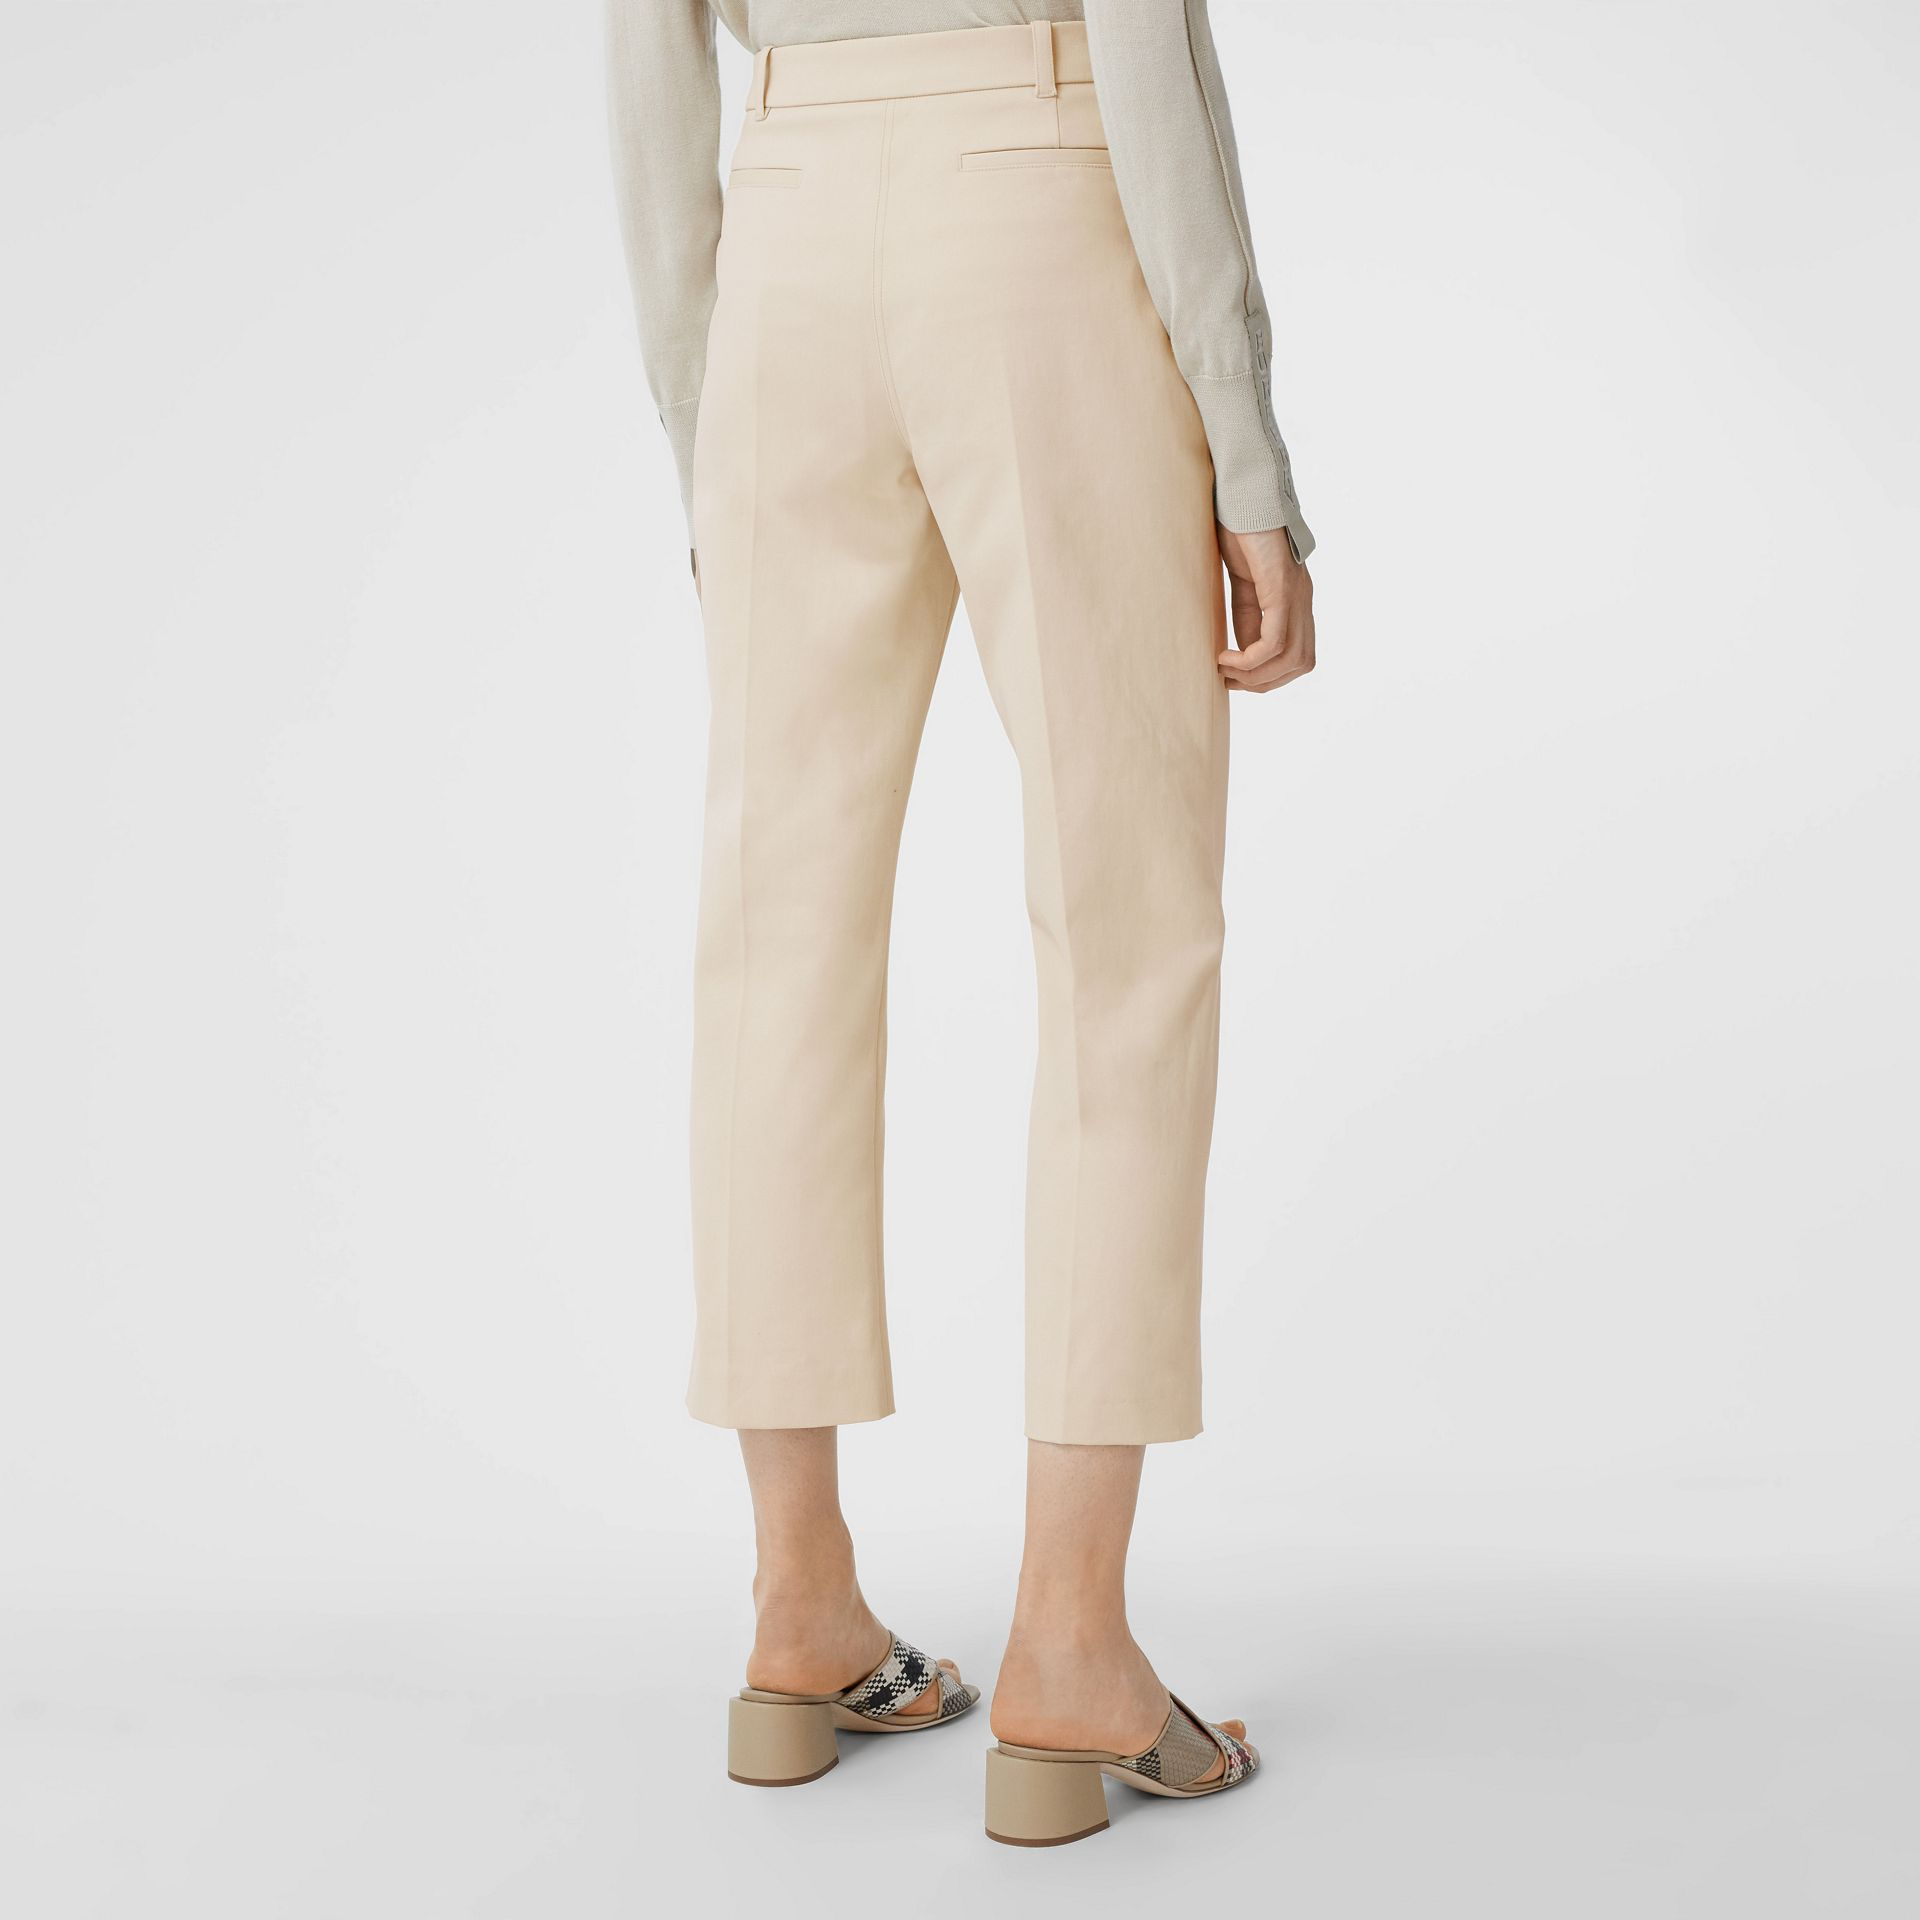 Logo Graphic Stretch Cotton Canvas Tailored Trousers in Pale Cream - Women | Burberry Hong Kong S.A.R - gallery image 2